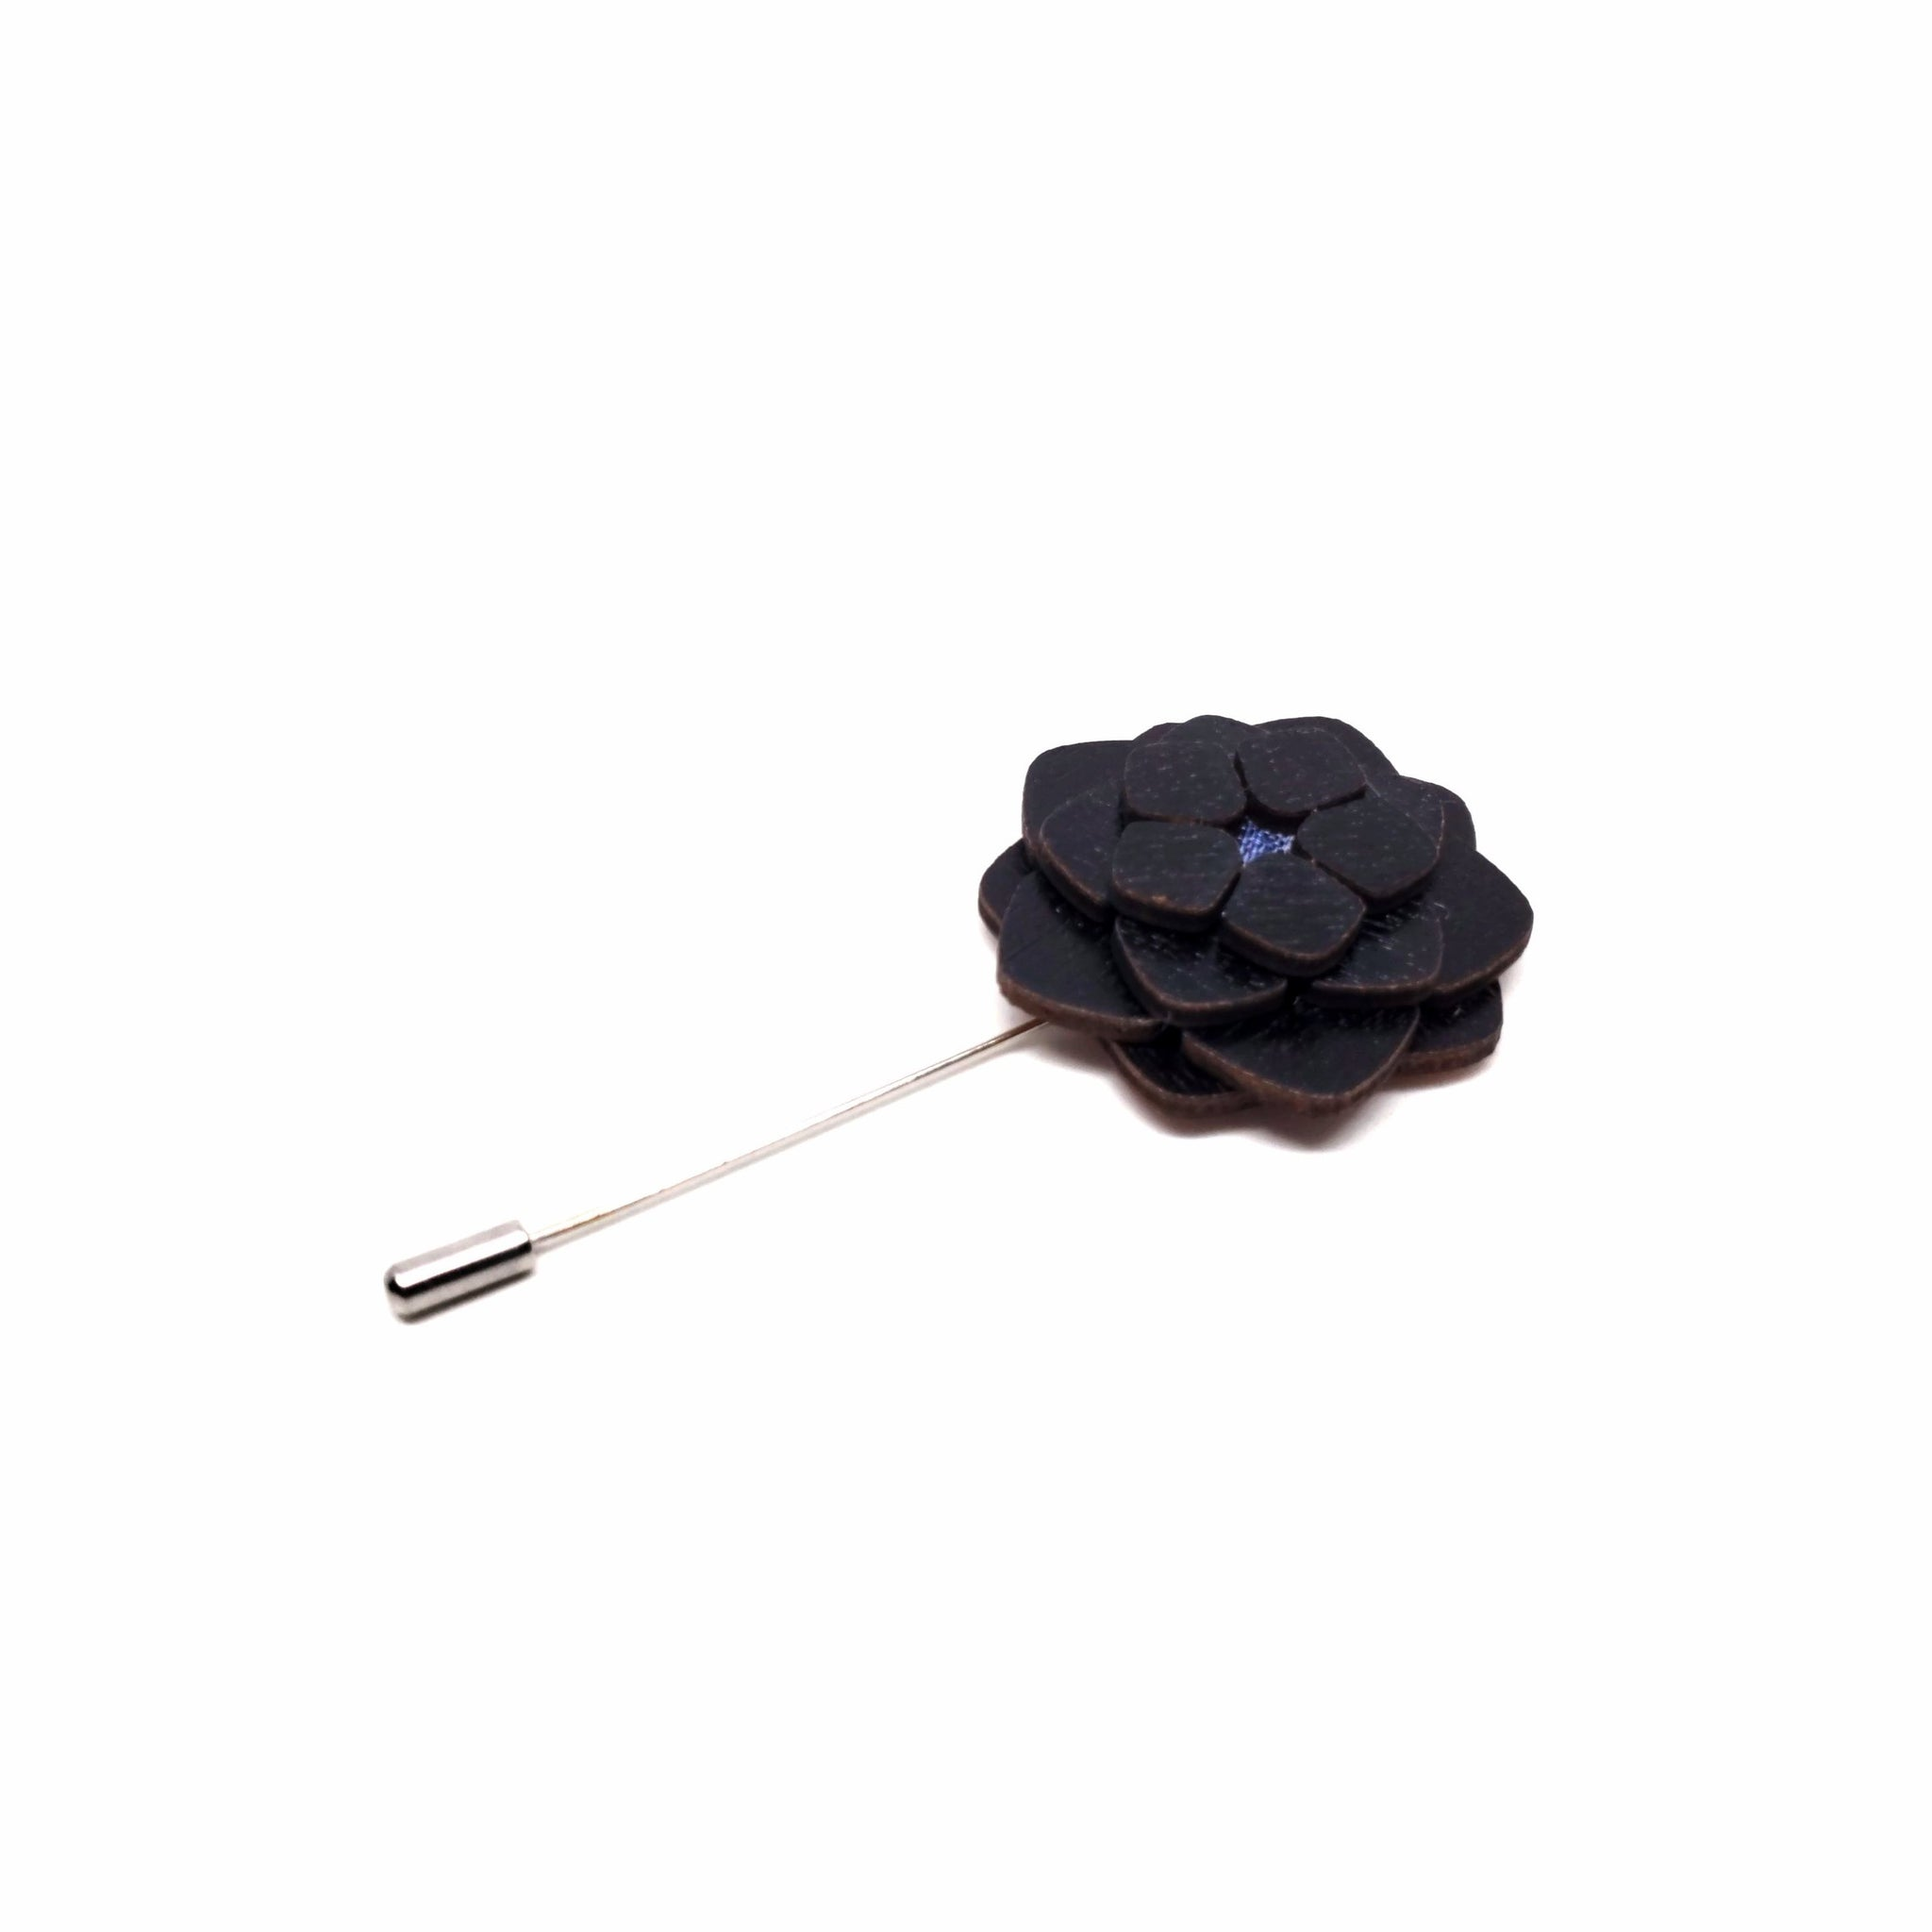 Fontainbleau Wooden Lapel Pin Flower